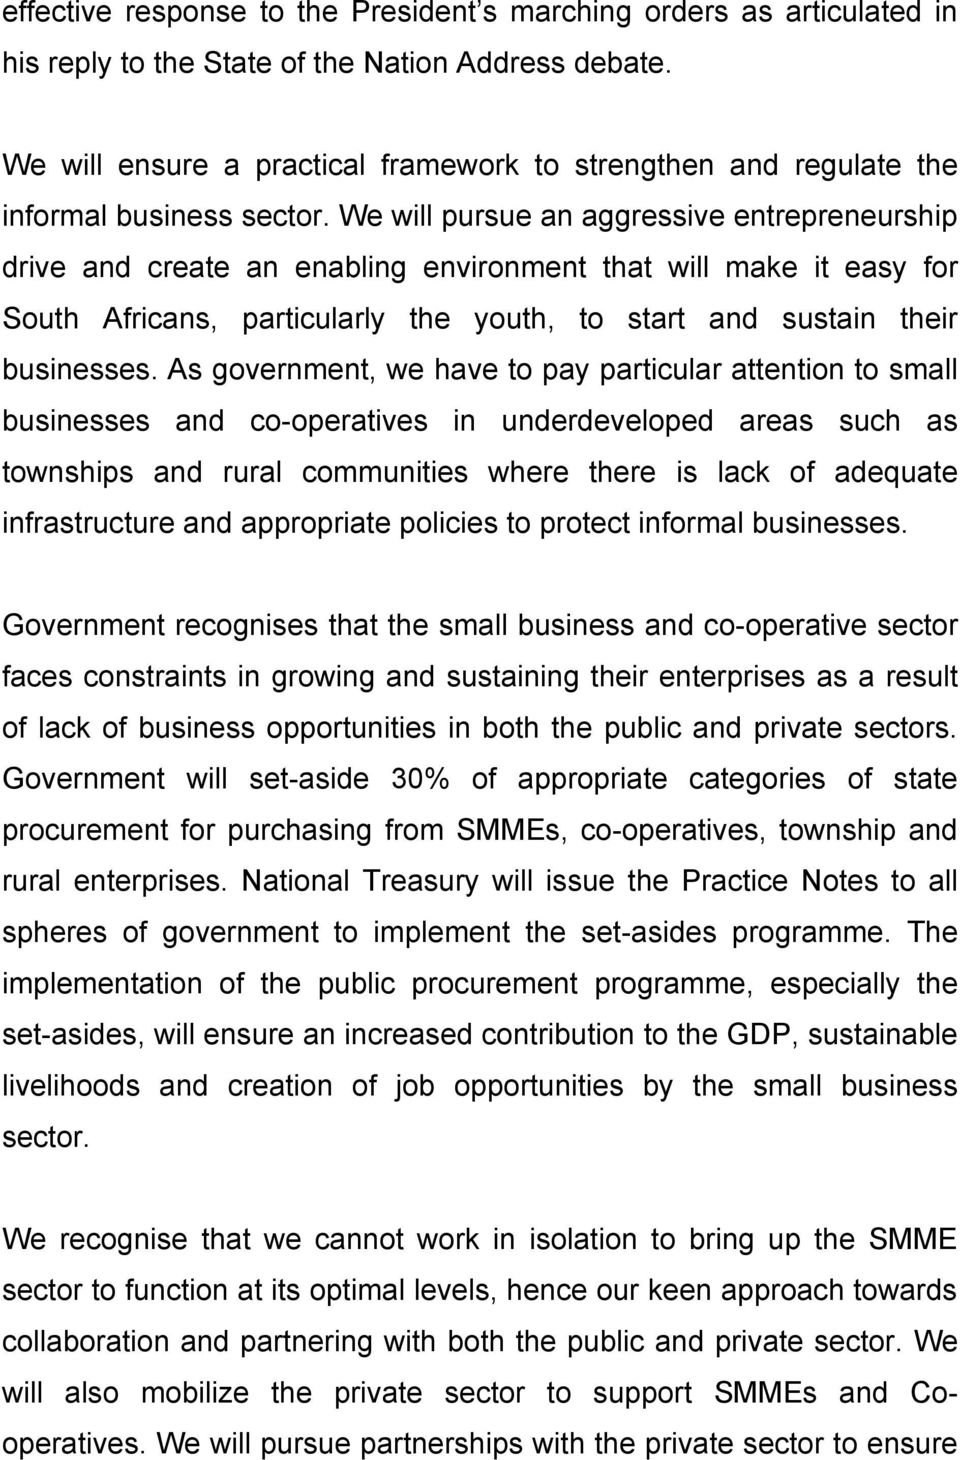 We will pursue an aggressive entrepreneurship drive and create an enabling environment that will make it easy for South Africans, particularly the youth, to start and sustain their businesses.